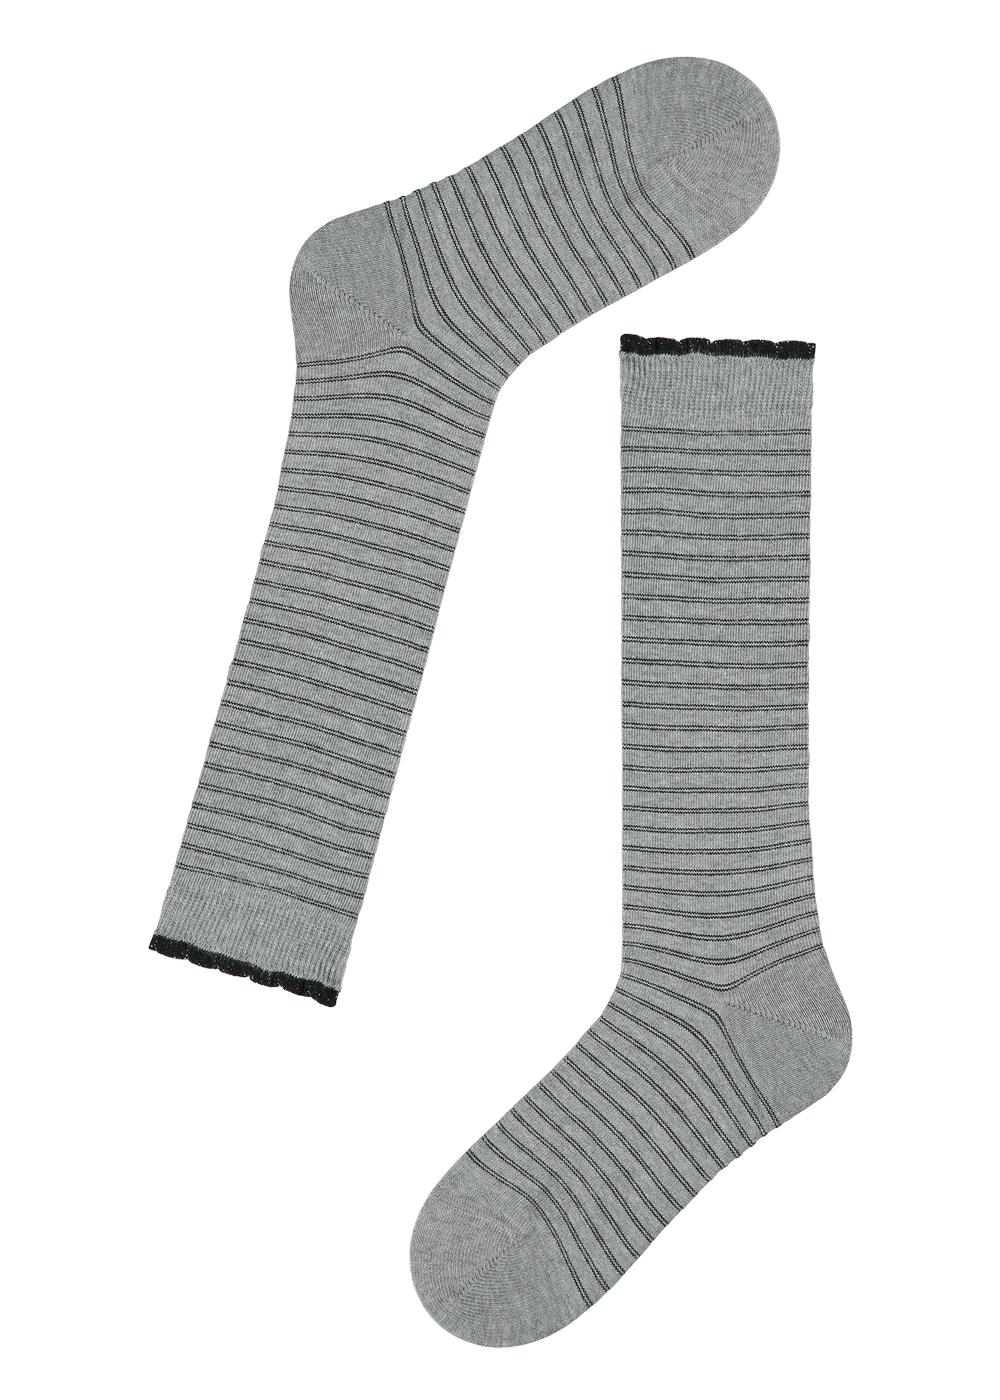 Children's Long Patterned Cotton Socks